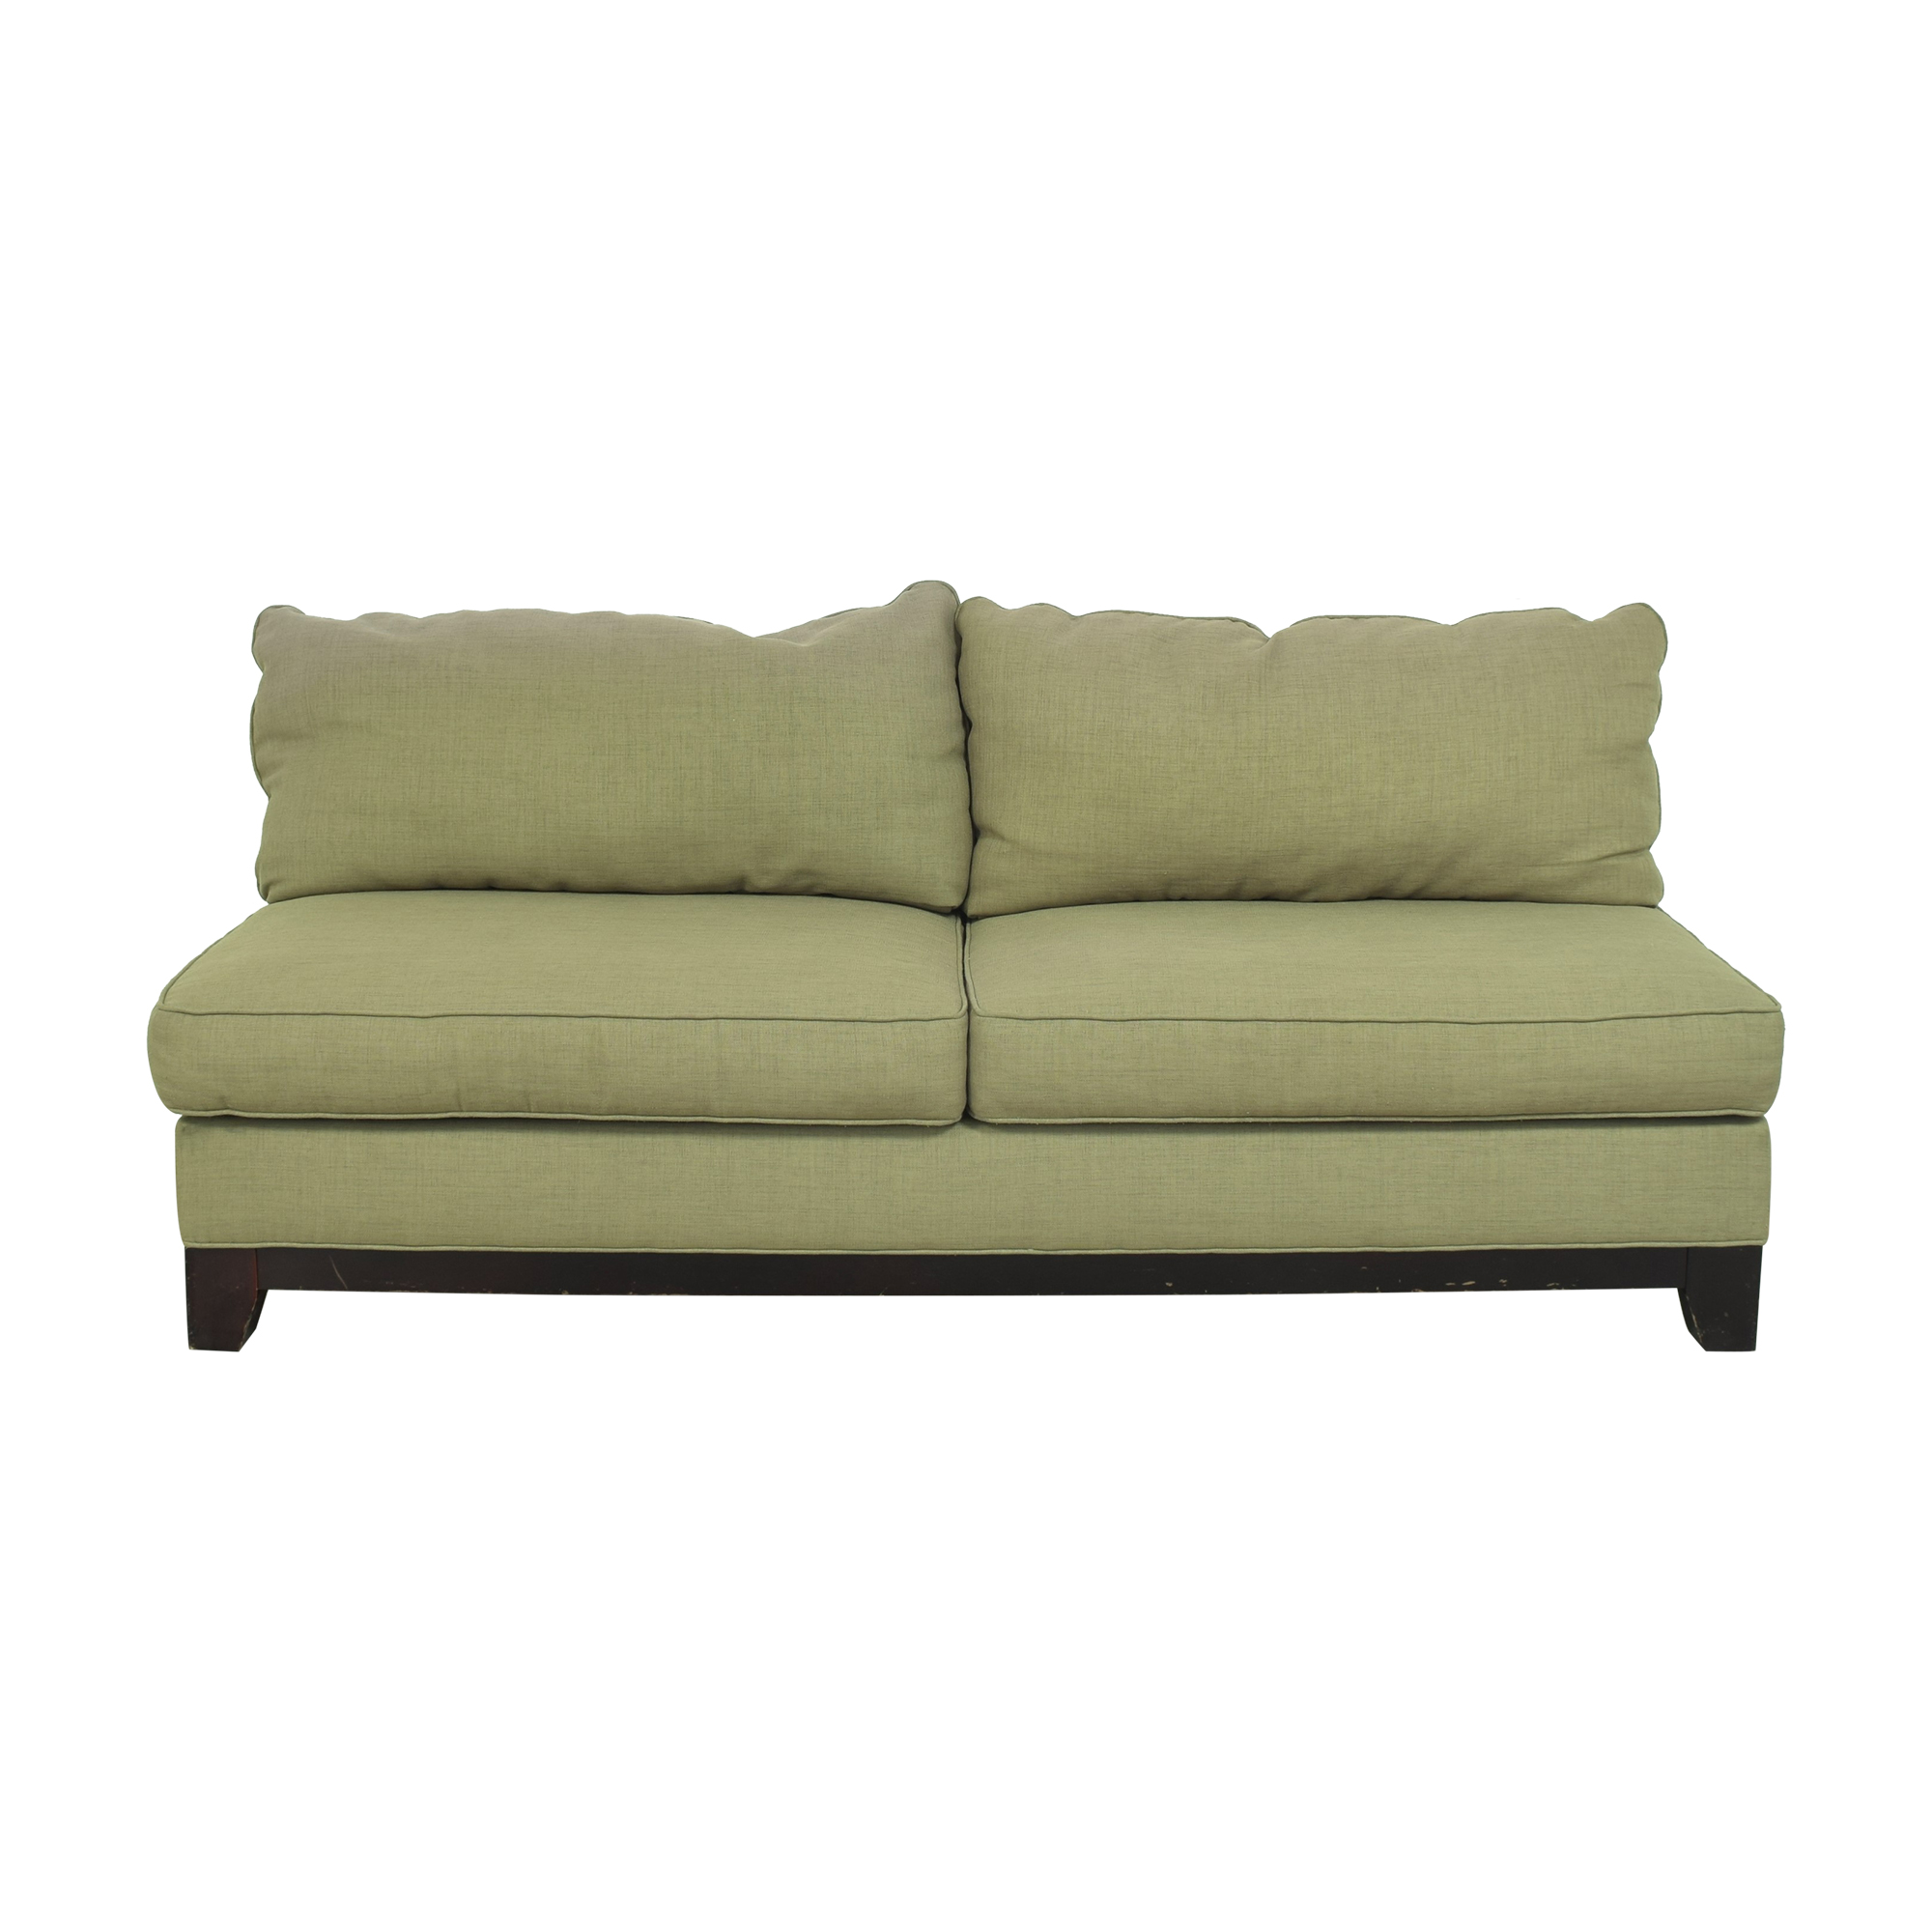 Bauhaus Furniture Armless Two Cushion Sofa / Classic Sofas